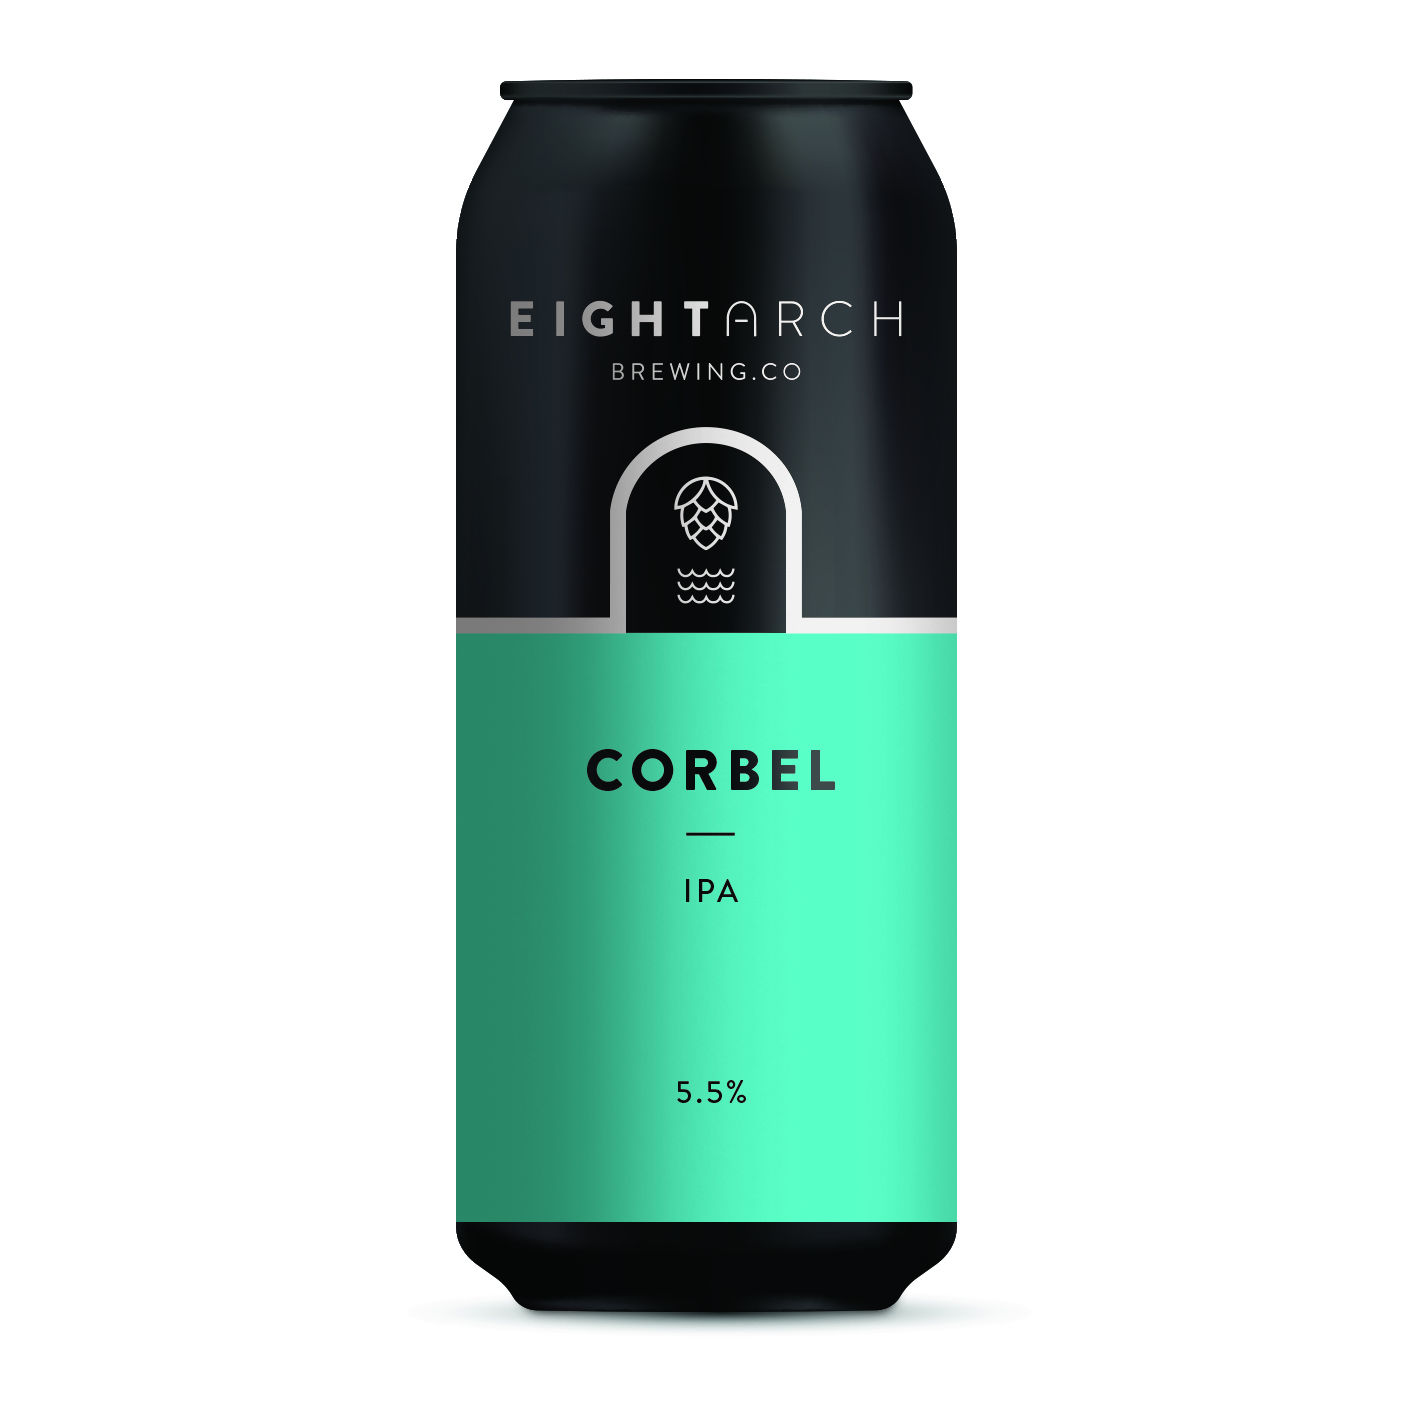 https://www.8archbrewing.co.uk/wp-content/uploads/2020/09/Corbel_440ml-can_white.jpg